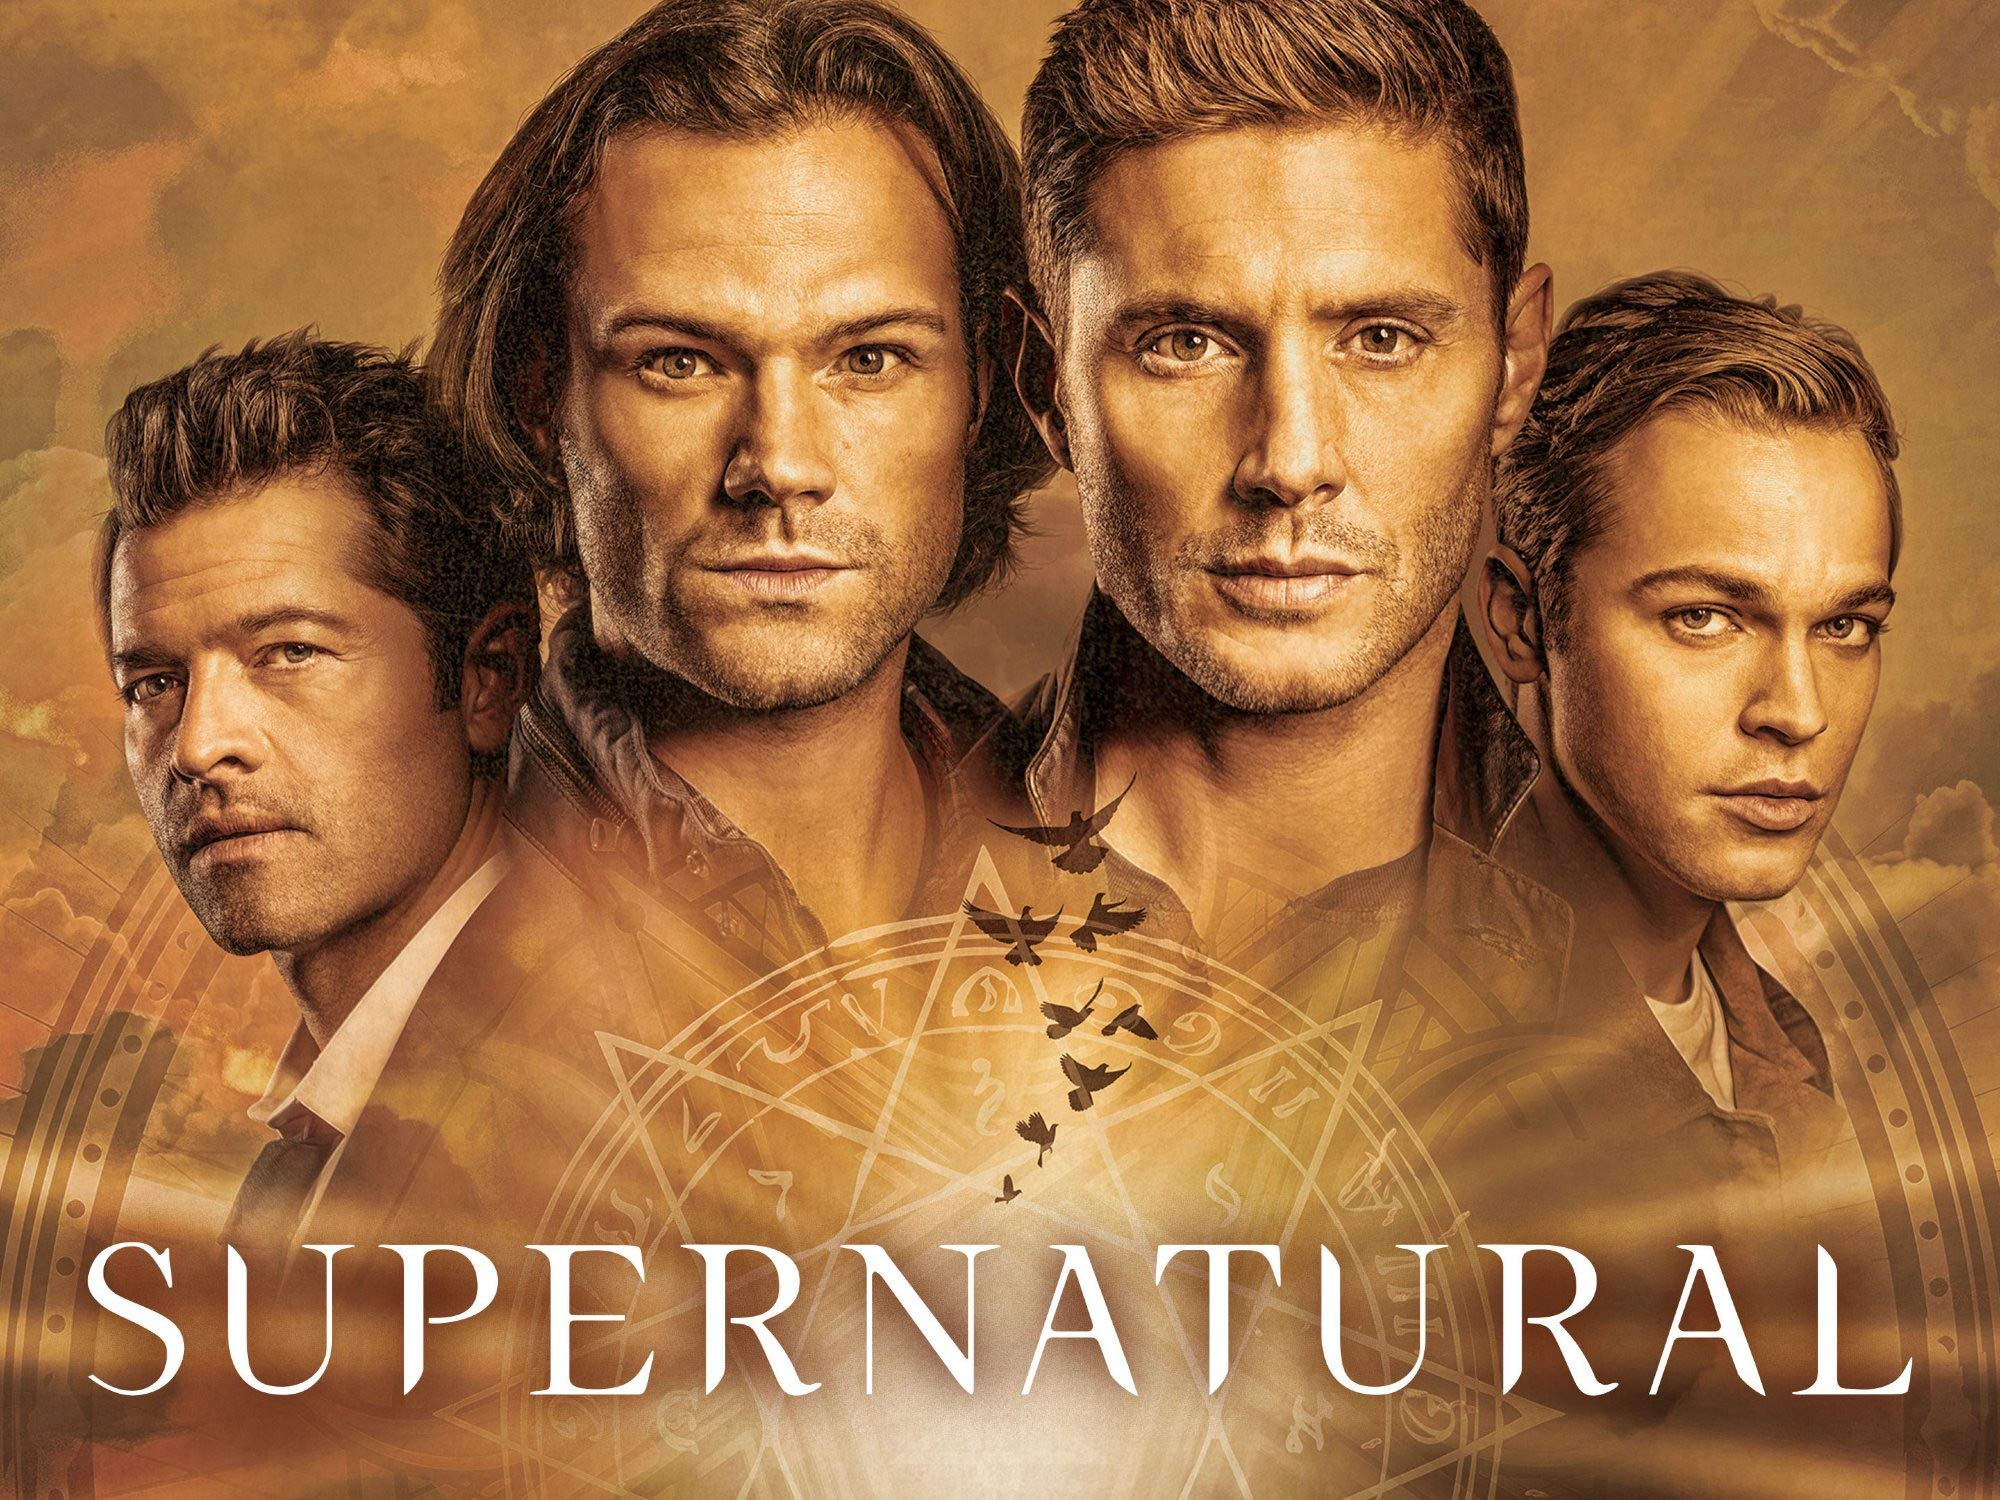 Supernatural, Supernatural Season 15 New Episode And When Will Show Return?